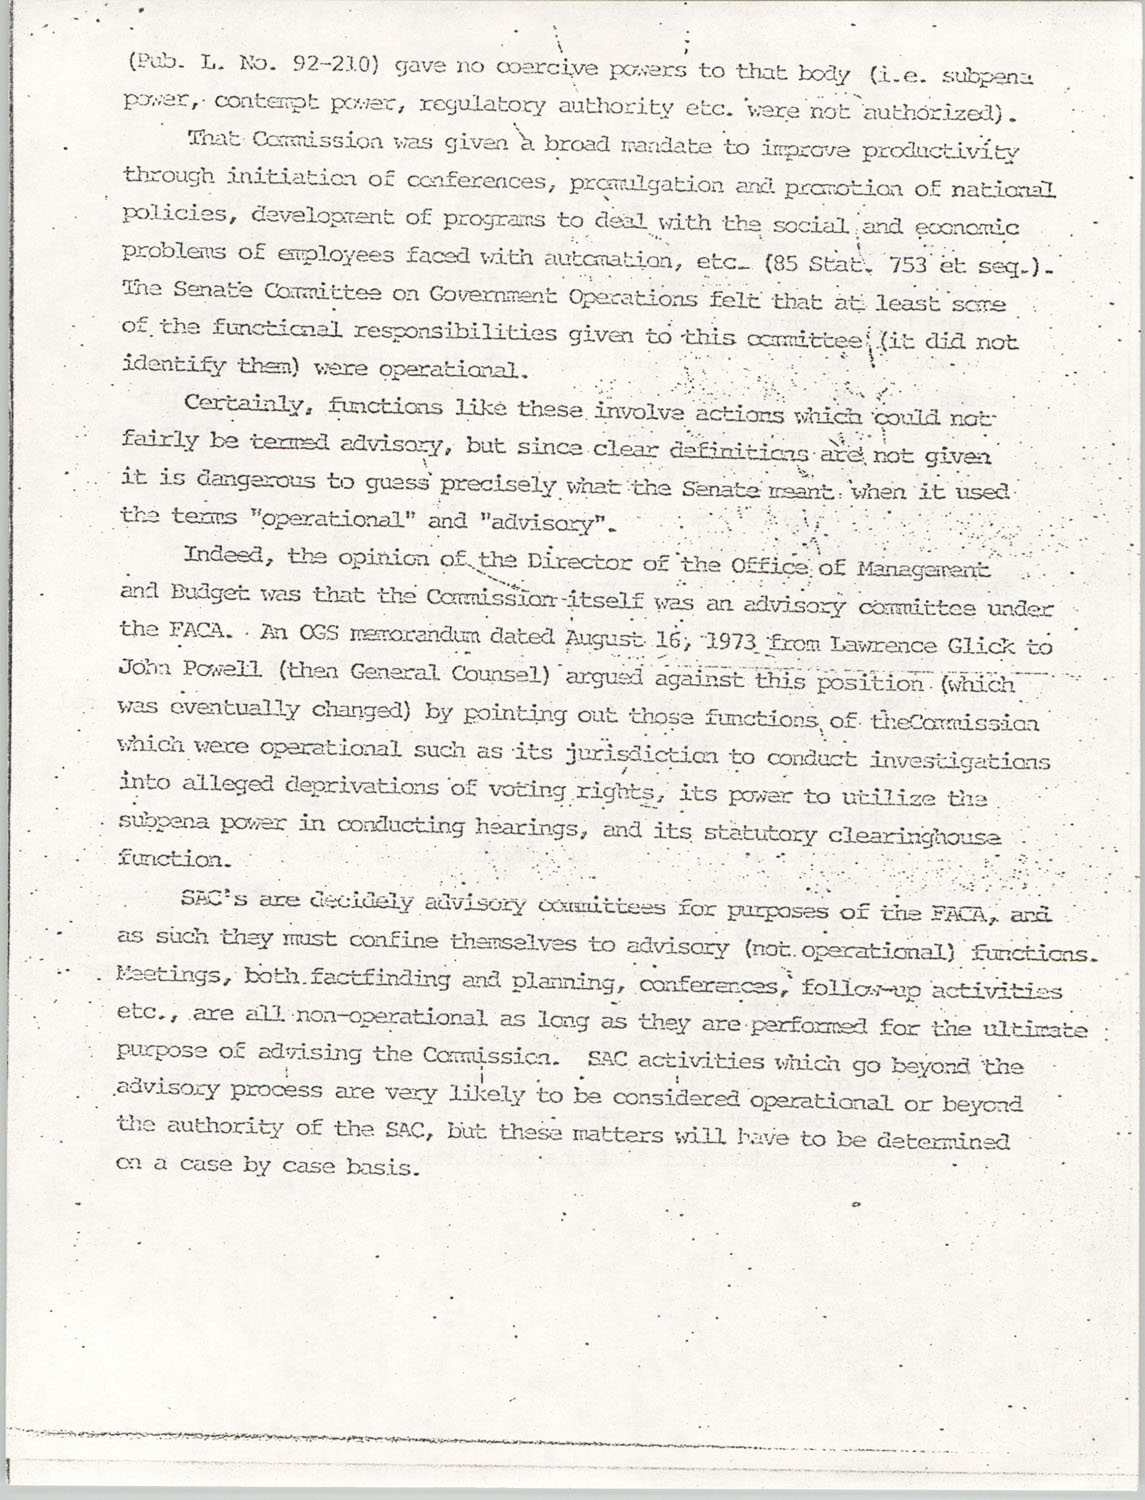 Memorandum from Lawrence B. Glick to Isaiah T. Creswell, August 7, 1975, Page 10